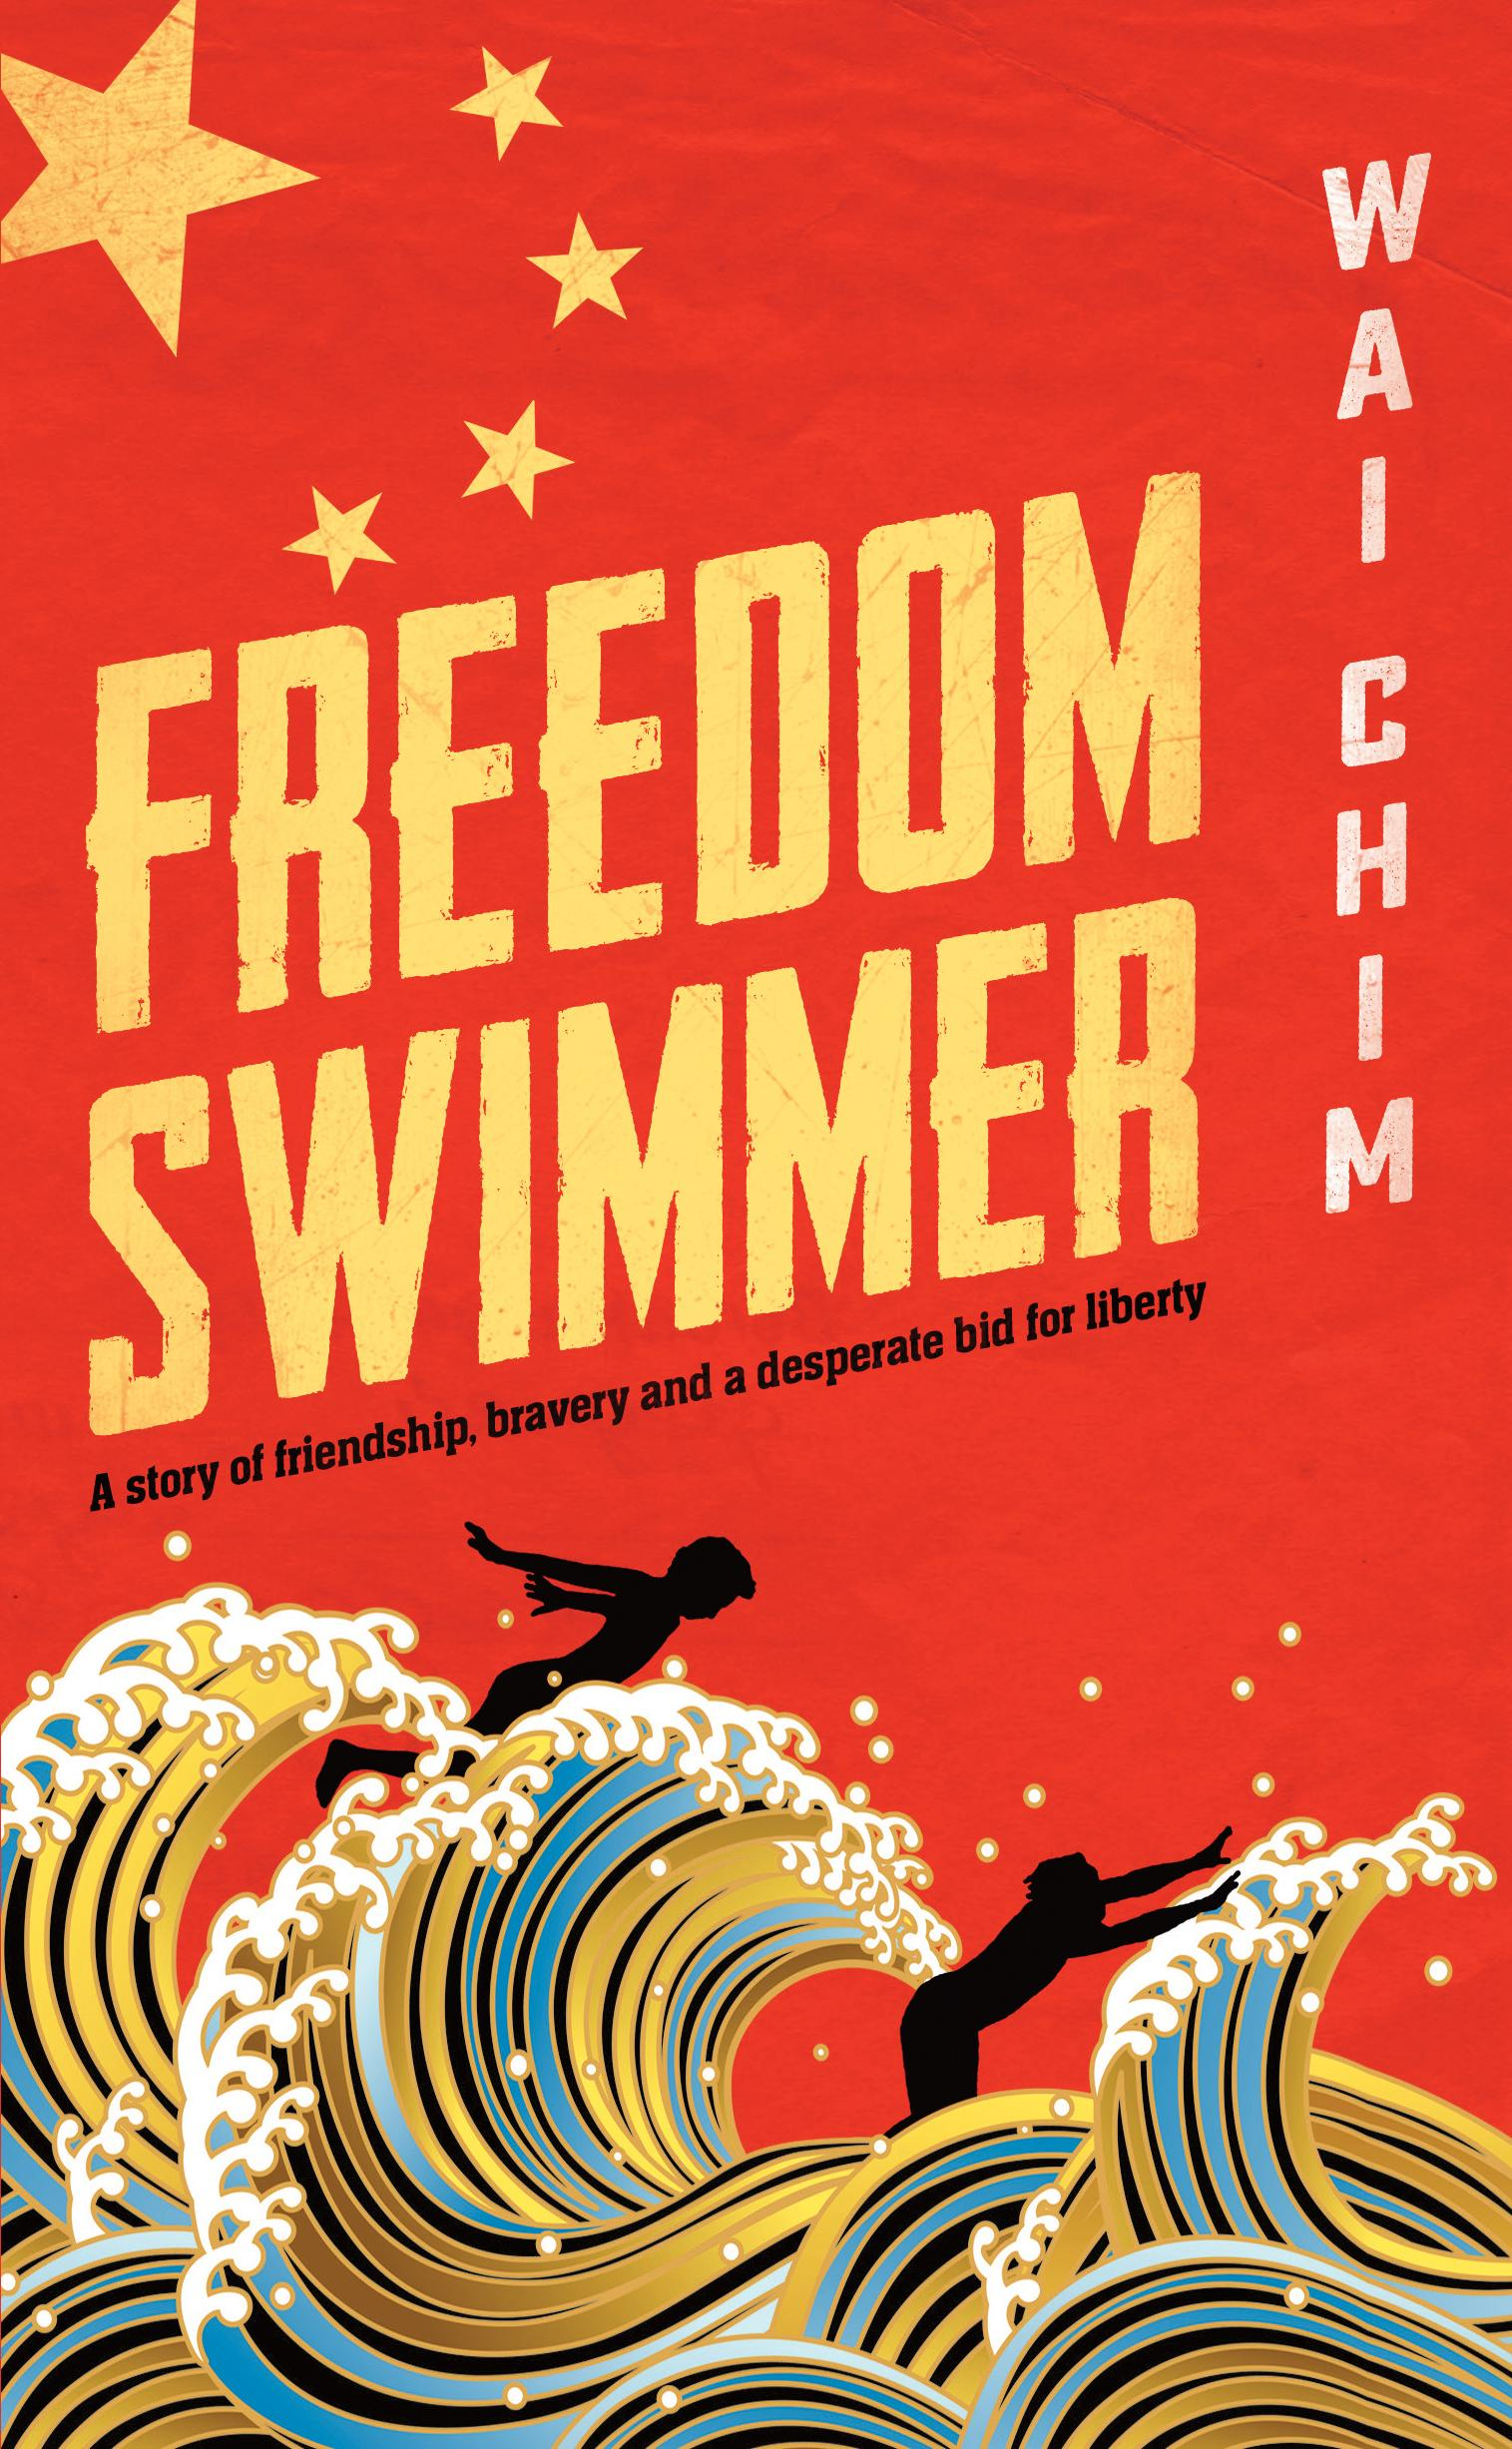 FreedomSwimmer